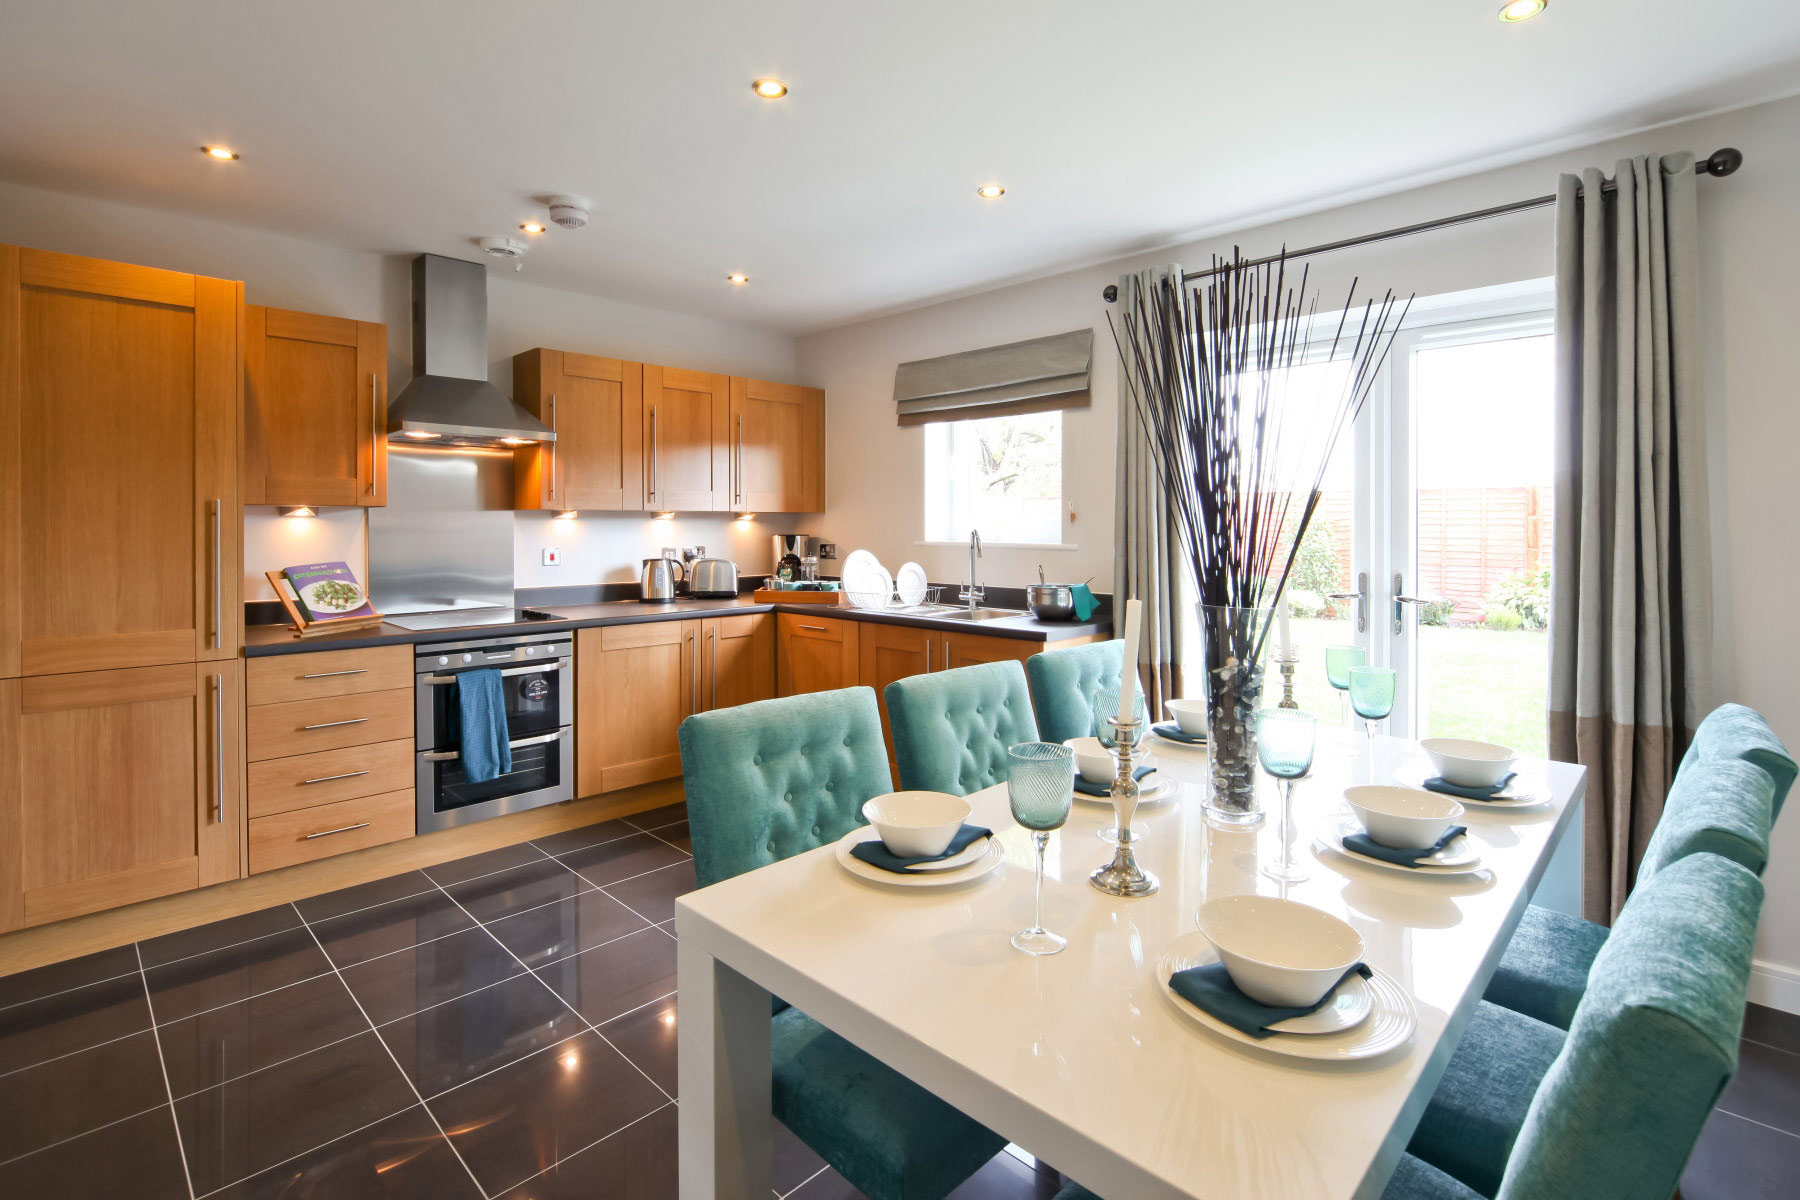 Taylor Wimpey Typical Kitchen-Diner